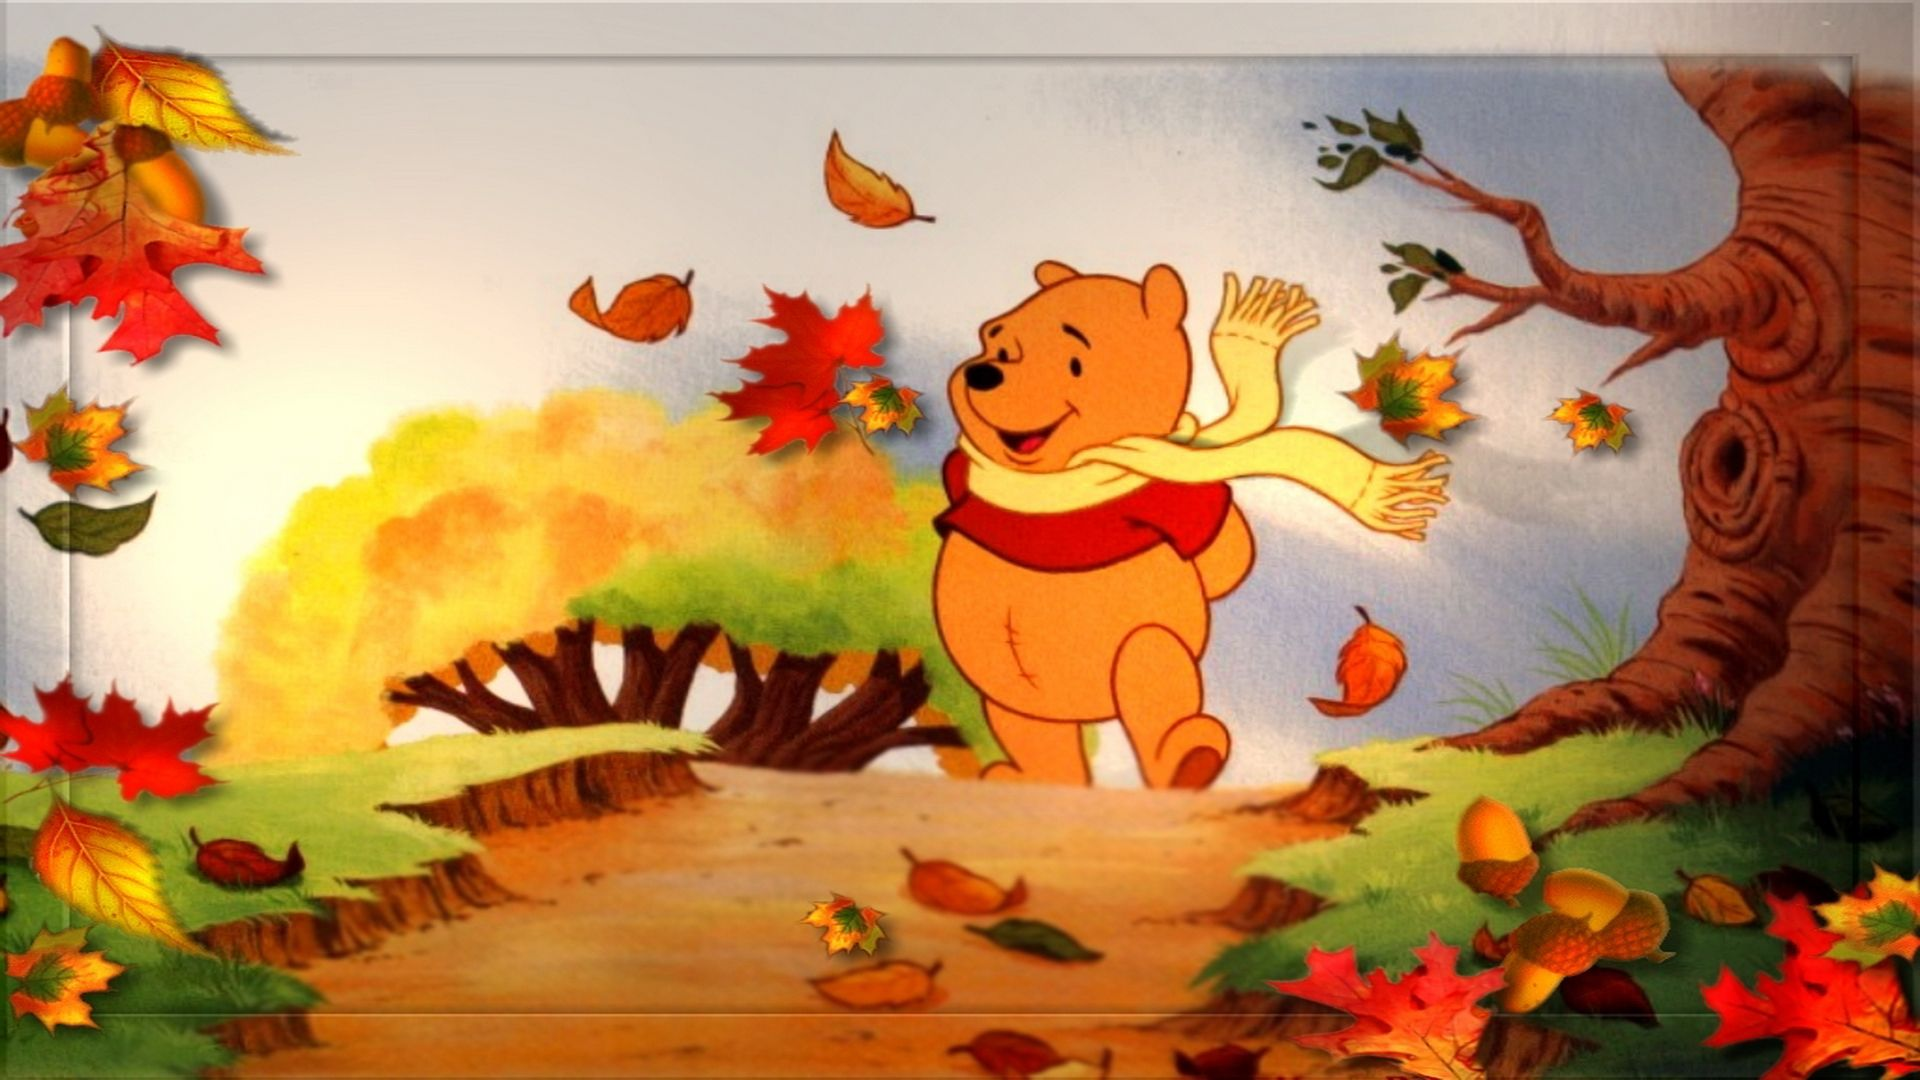 Happy Thanksgiving Disney Wallpaper Images Disney Thanksgiving Thanksgiving Wallpaper Winnie The Pooh Cartoon